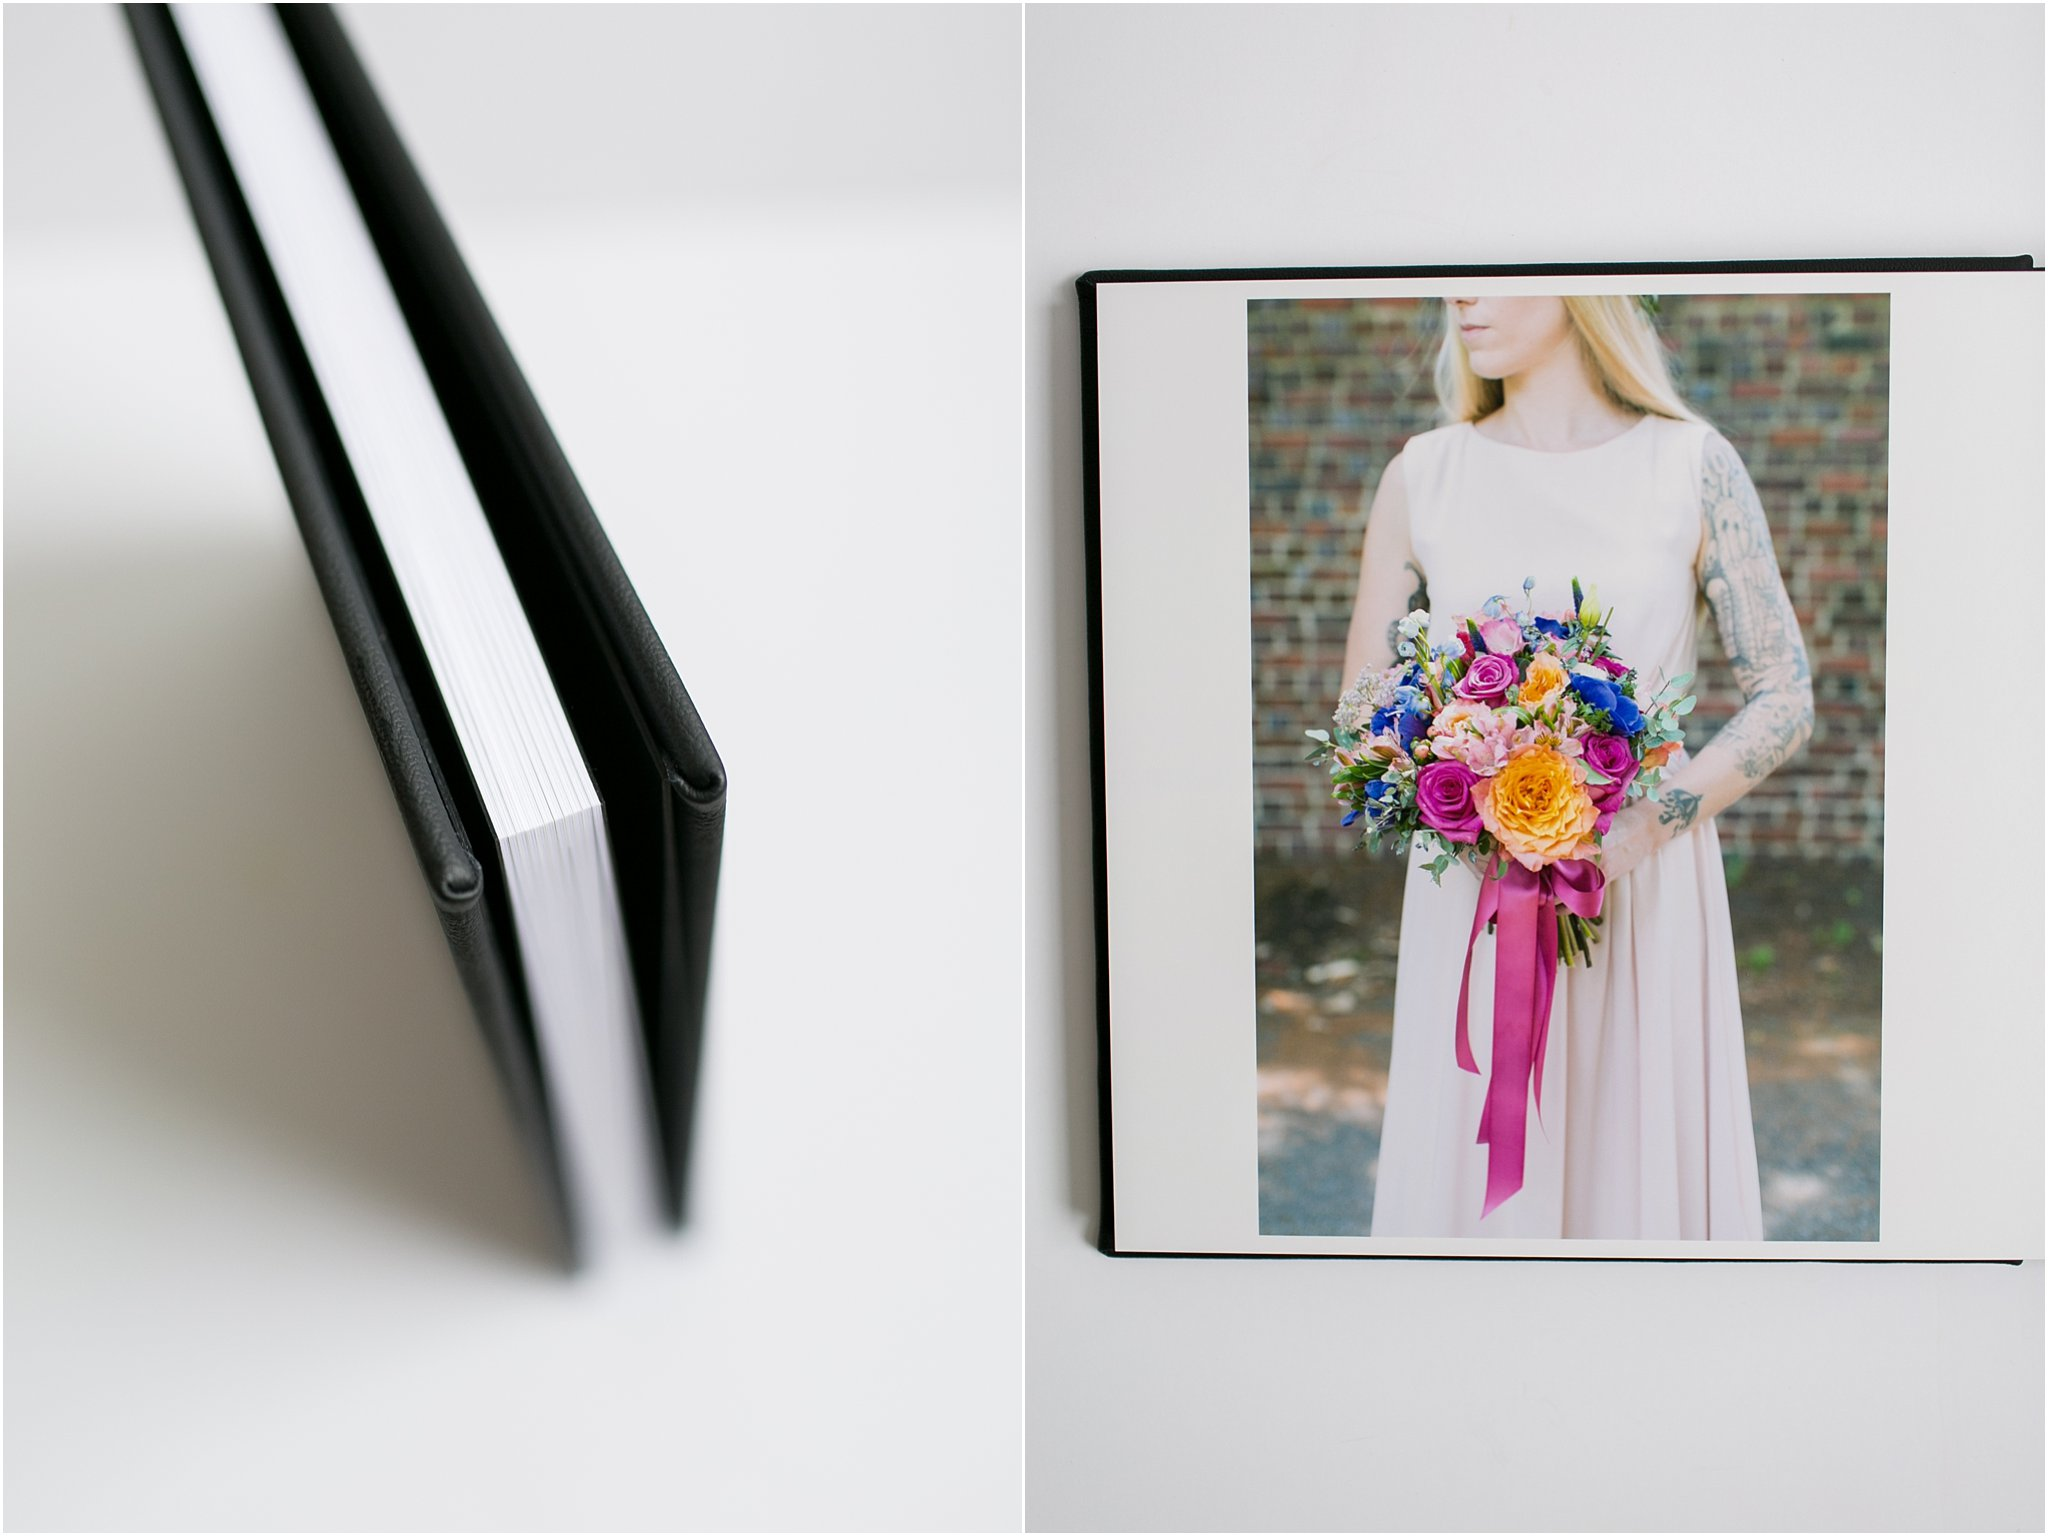 jessica_ryan_photography_millers_signature_album_wedding_photography_album_virginia_hermitage_museum_and_gardens_3190